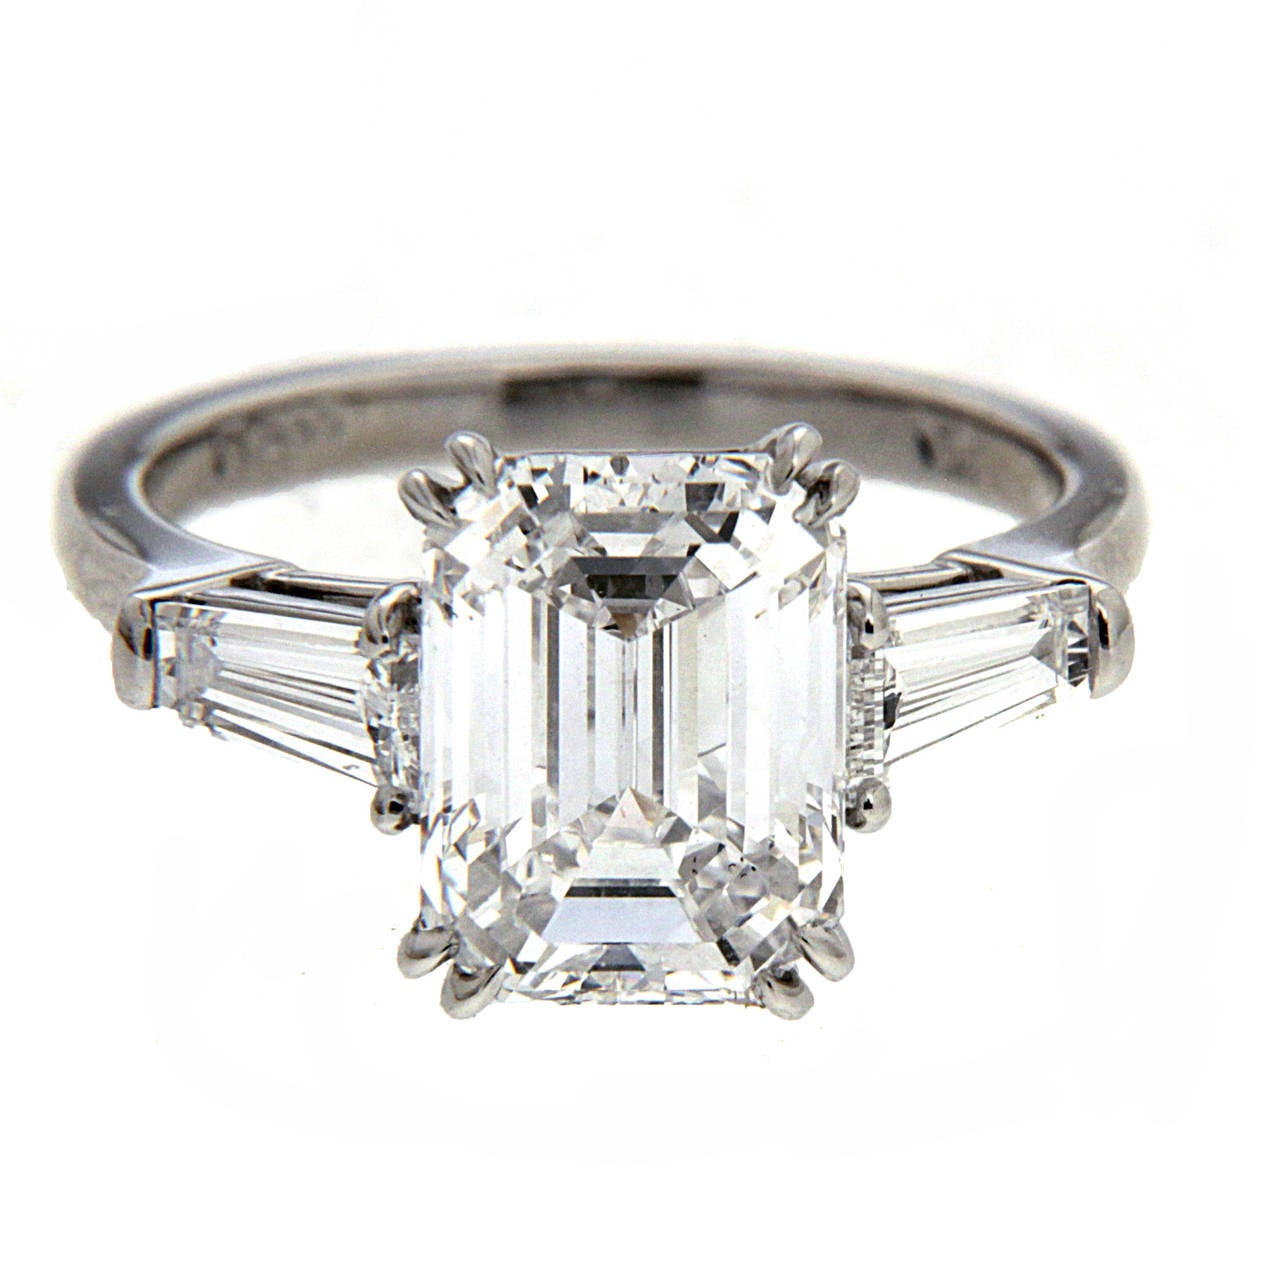 Luxury 3 Carat Emerald Cut Engagement Ring